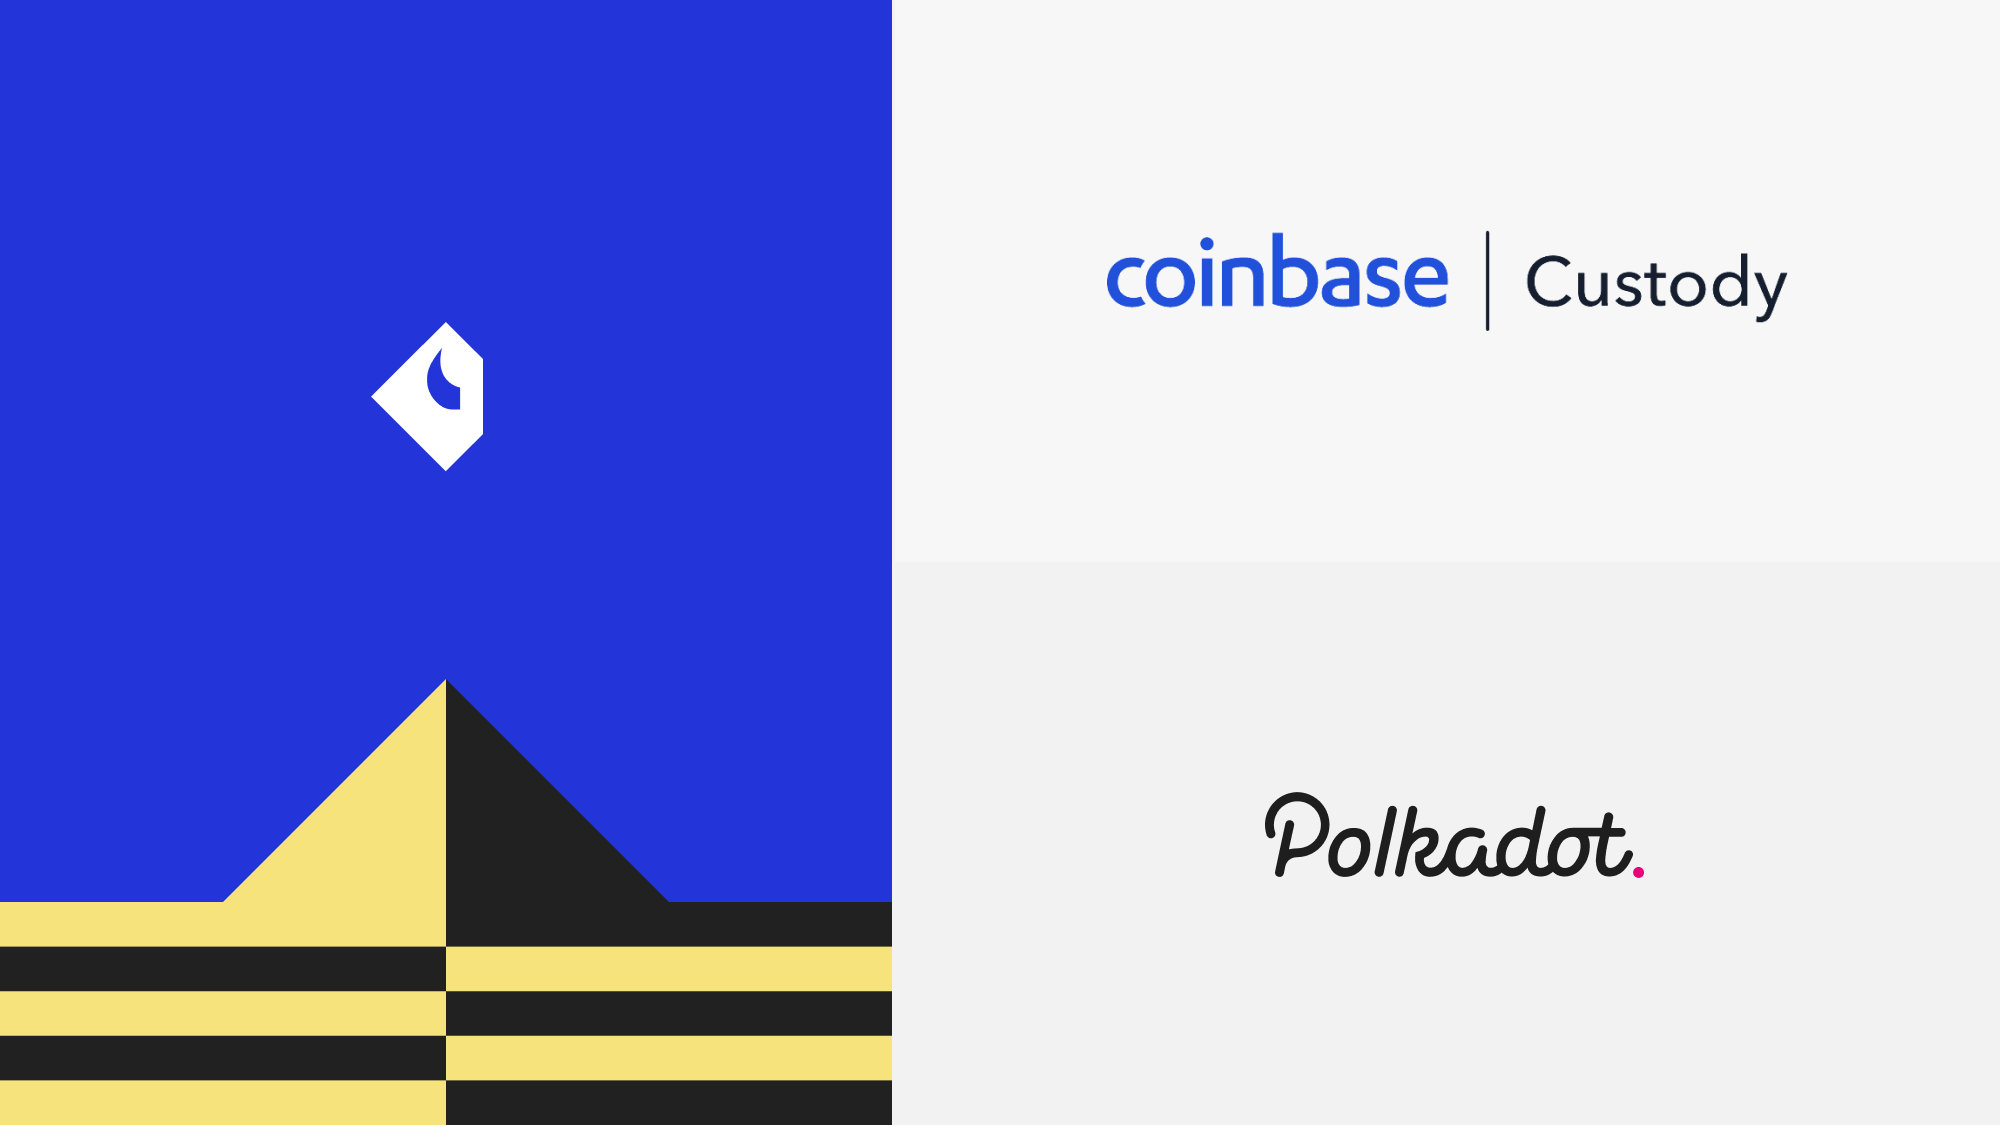 Bison Trails Announces Collaboration with Coinbase Custody to Enable Secure Polkadot Staking